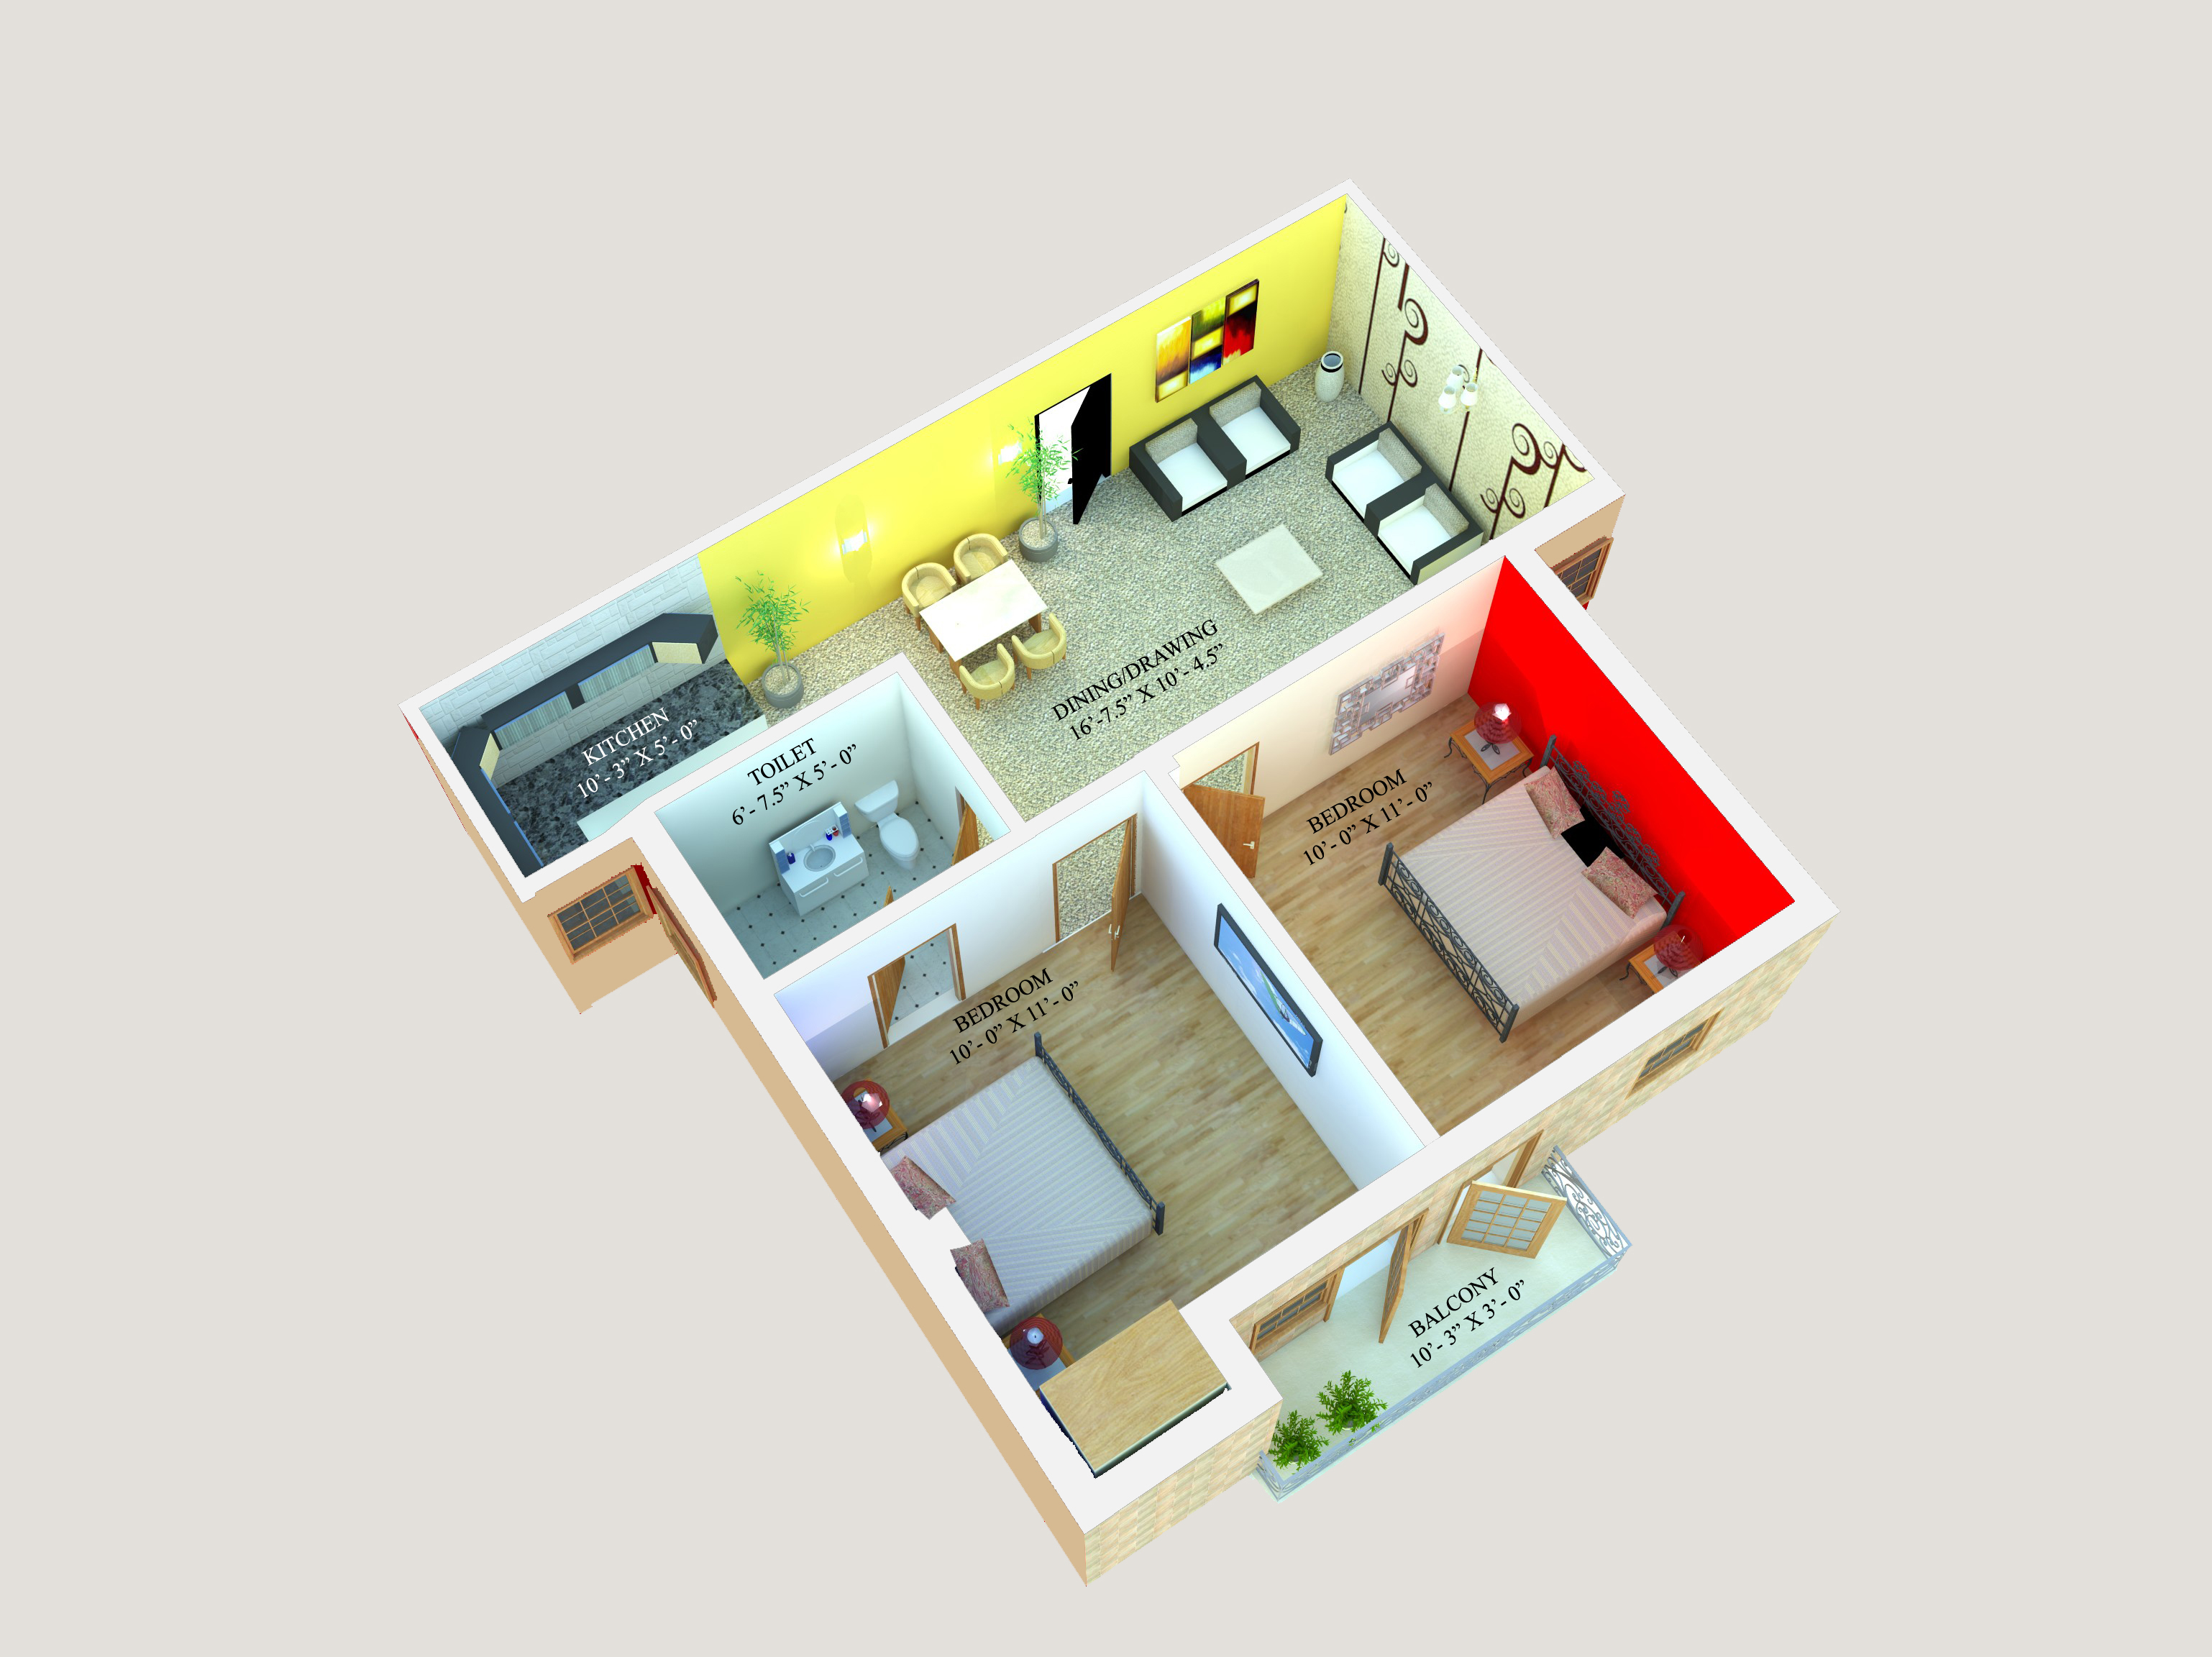 600 sq ft house plans in chennai